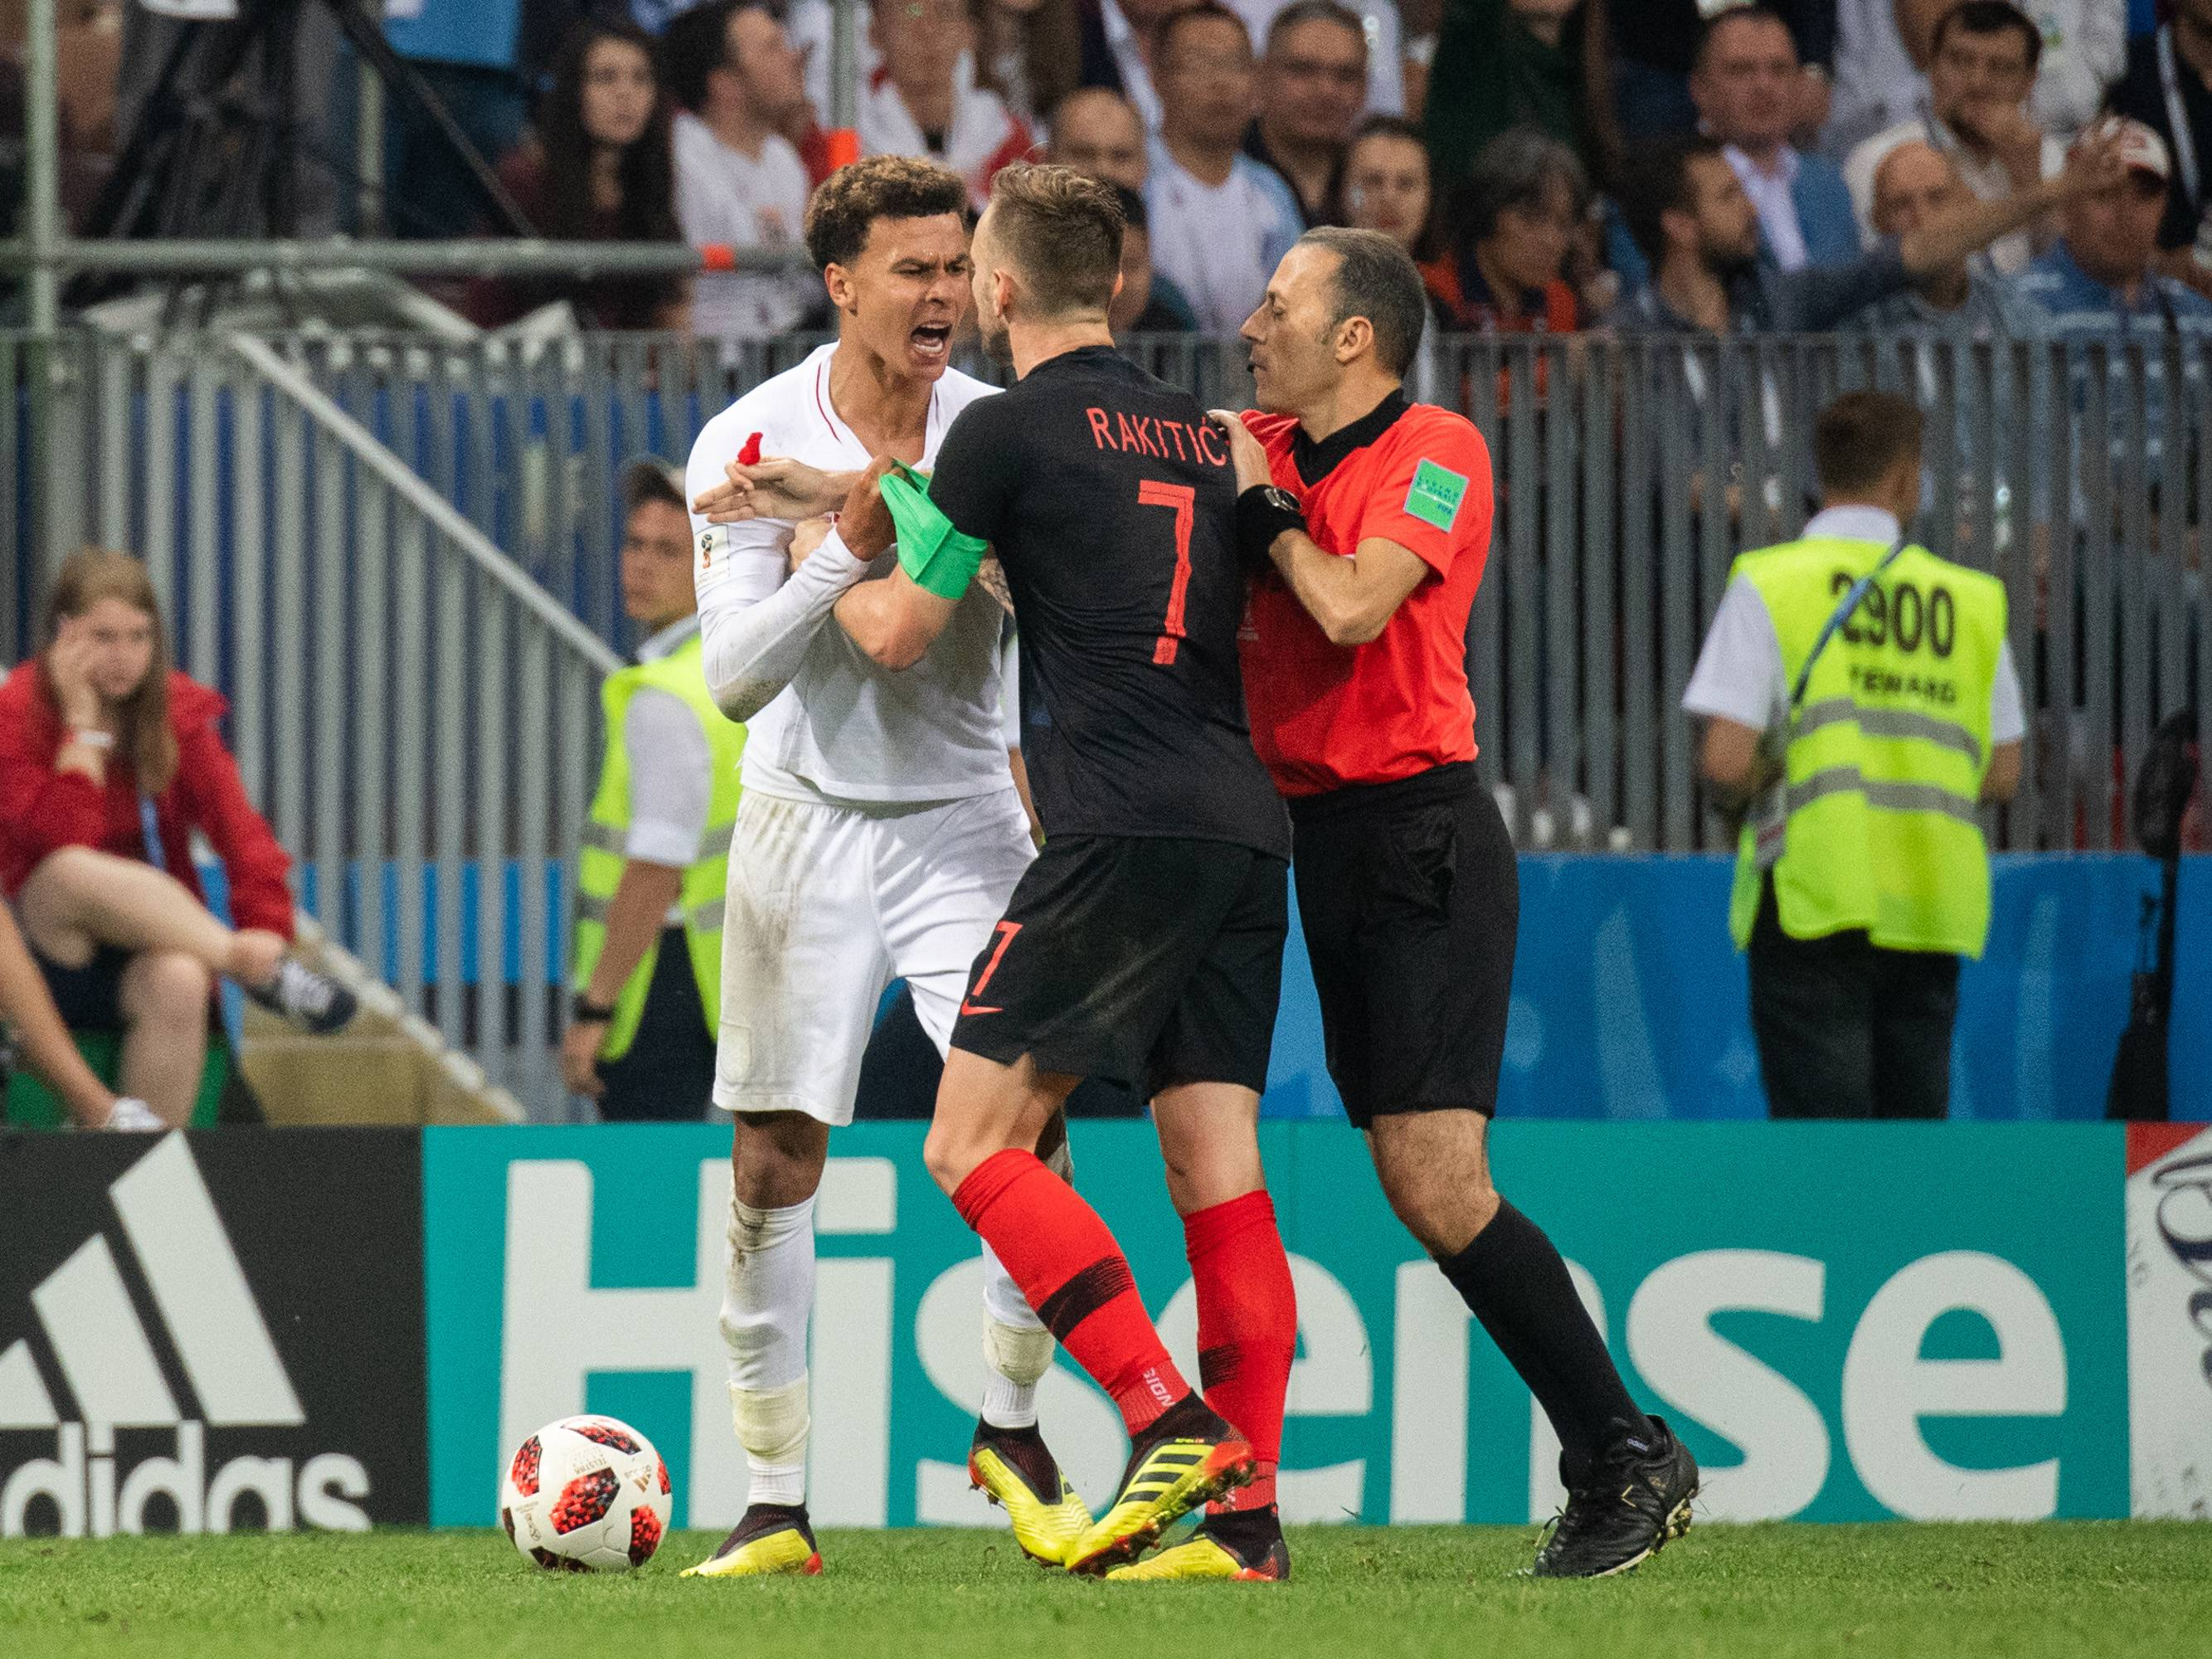 July 11, 2018 - Moscow, Russia - 180711 Irritated between Dele Alli of England and Ivan Rakitic of Croatia during the FIFA World Cup semi final match between Croatia and England on July 11, 2018 in Moscow..Photo: Petter Arvidson / BILDBYRÃ…N / kod PA / 92085 (Credit Image: © Petter Arvidson/Bildbyran via ZUMA Press) ! FOT.ZUMA/NEWSPIX.PL POLAND ONLY!!! --- Newspix.pl *** Local Caption *** www.newspix.pl mail us: info@newspix.pl call us: 0048 022 23 22 222 --- Polish Picture Agency by Ringier Axel Springer Poland